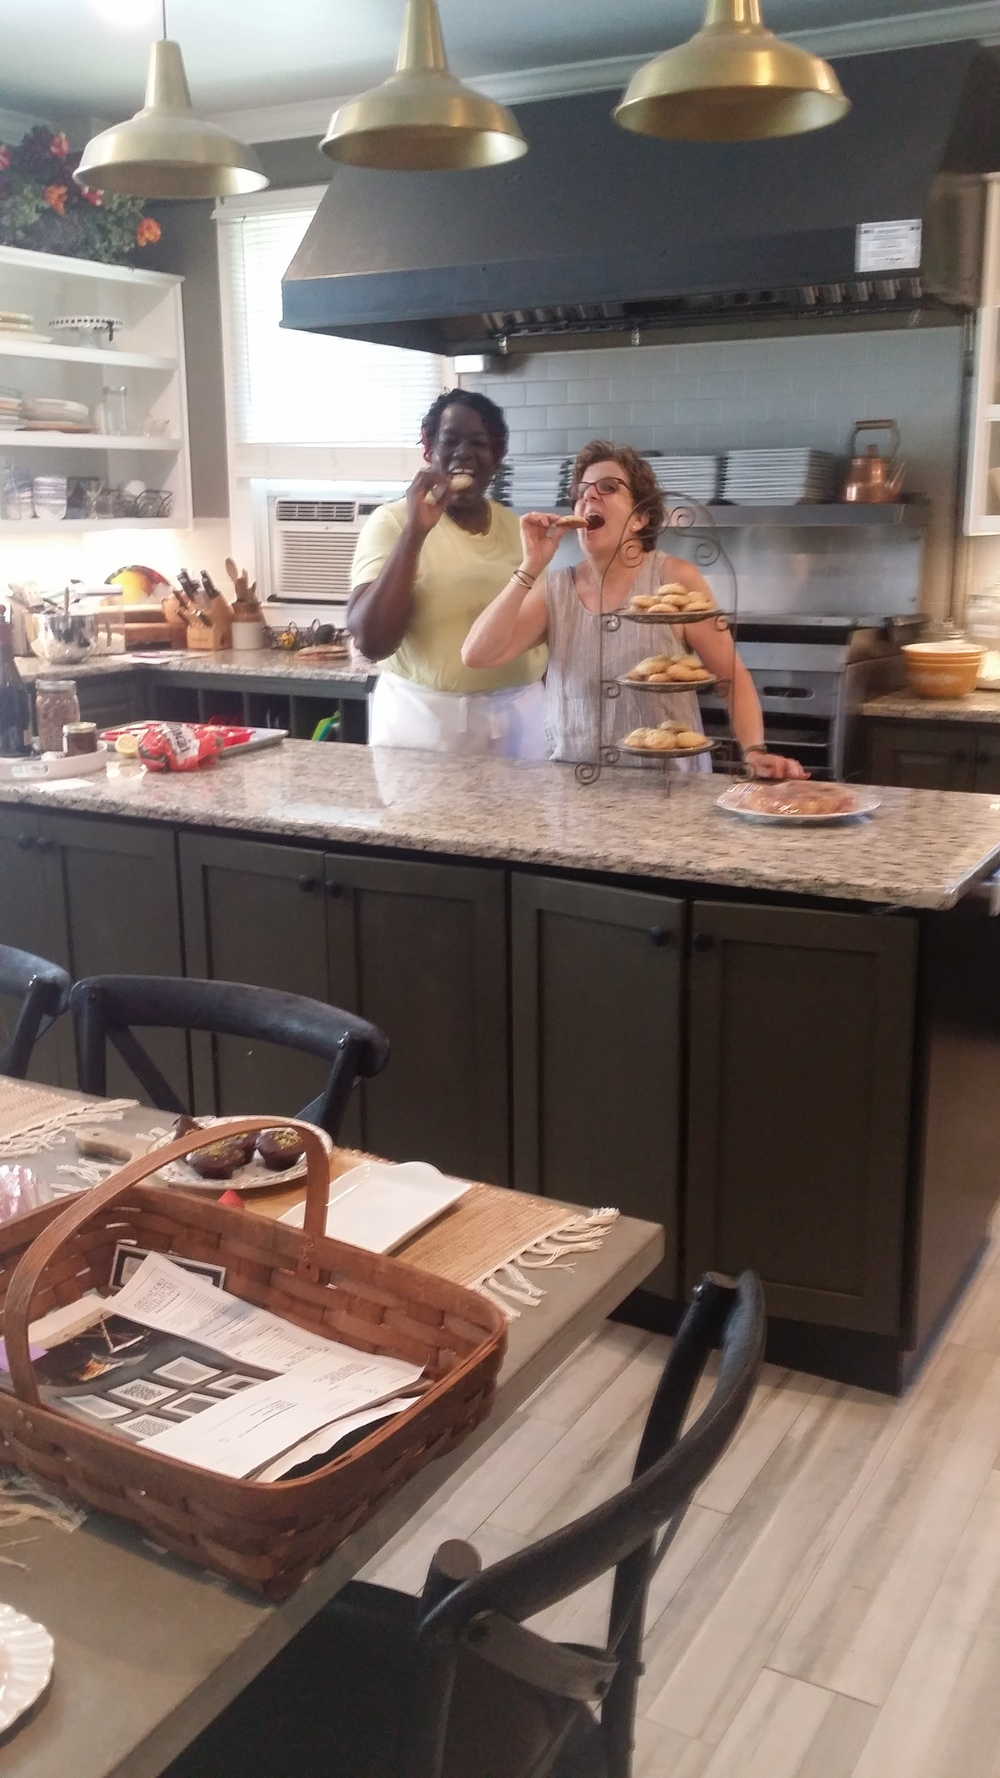 After our Cape Cod meditation class, chefs Gean and Donna are mindfully eating the cookies they prepared for us at the Capt Freeman kitchen.